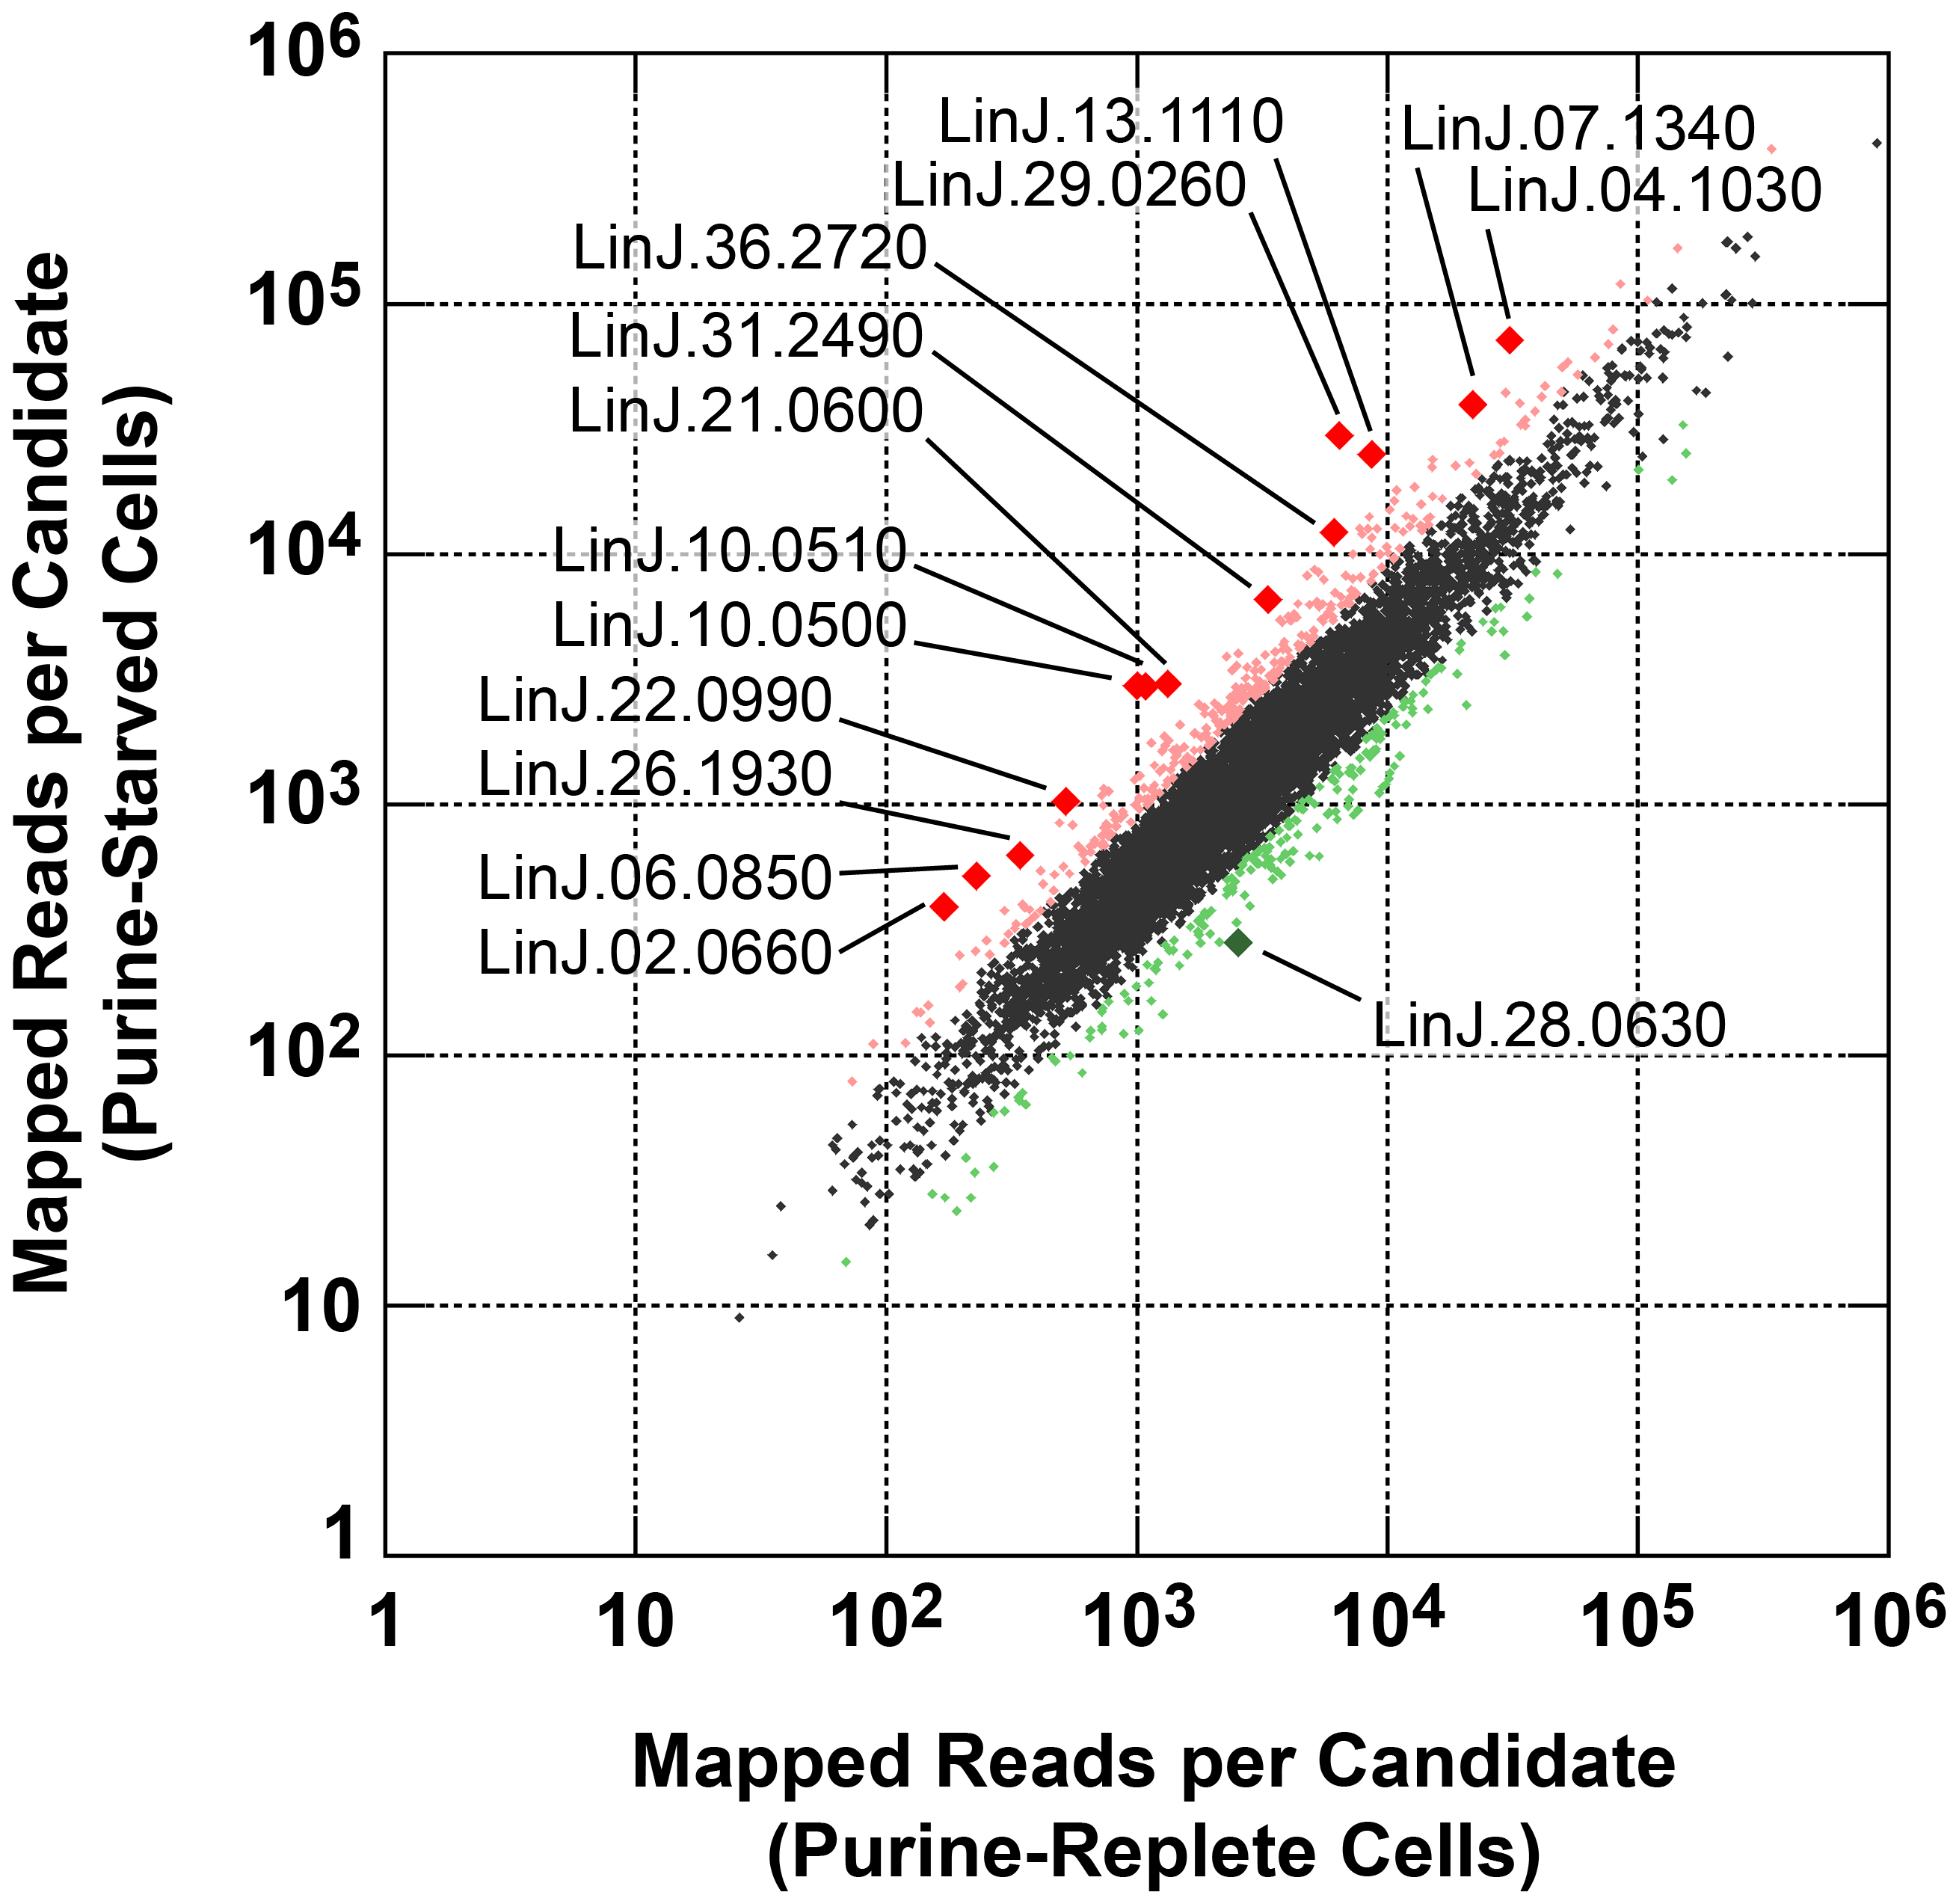 Scatter plot of SL RNA-Seq data comparing mRNA abundance between purine-replete and purine-starved cells.